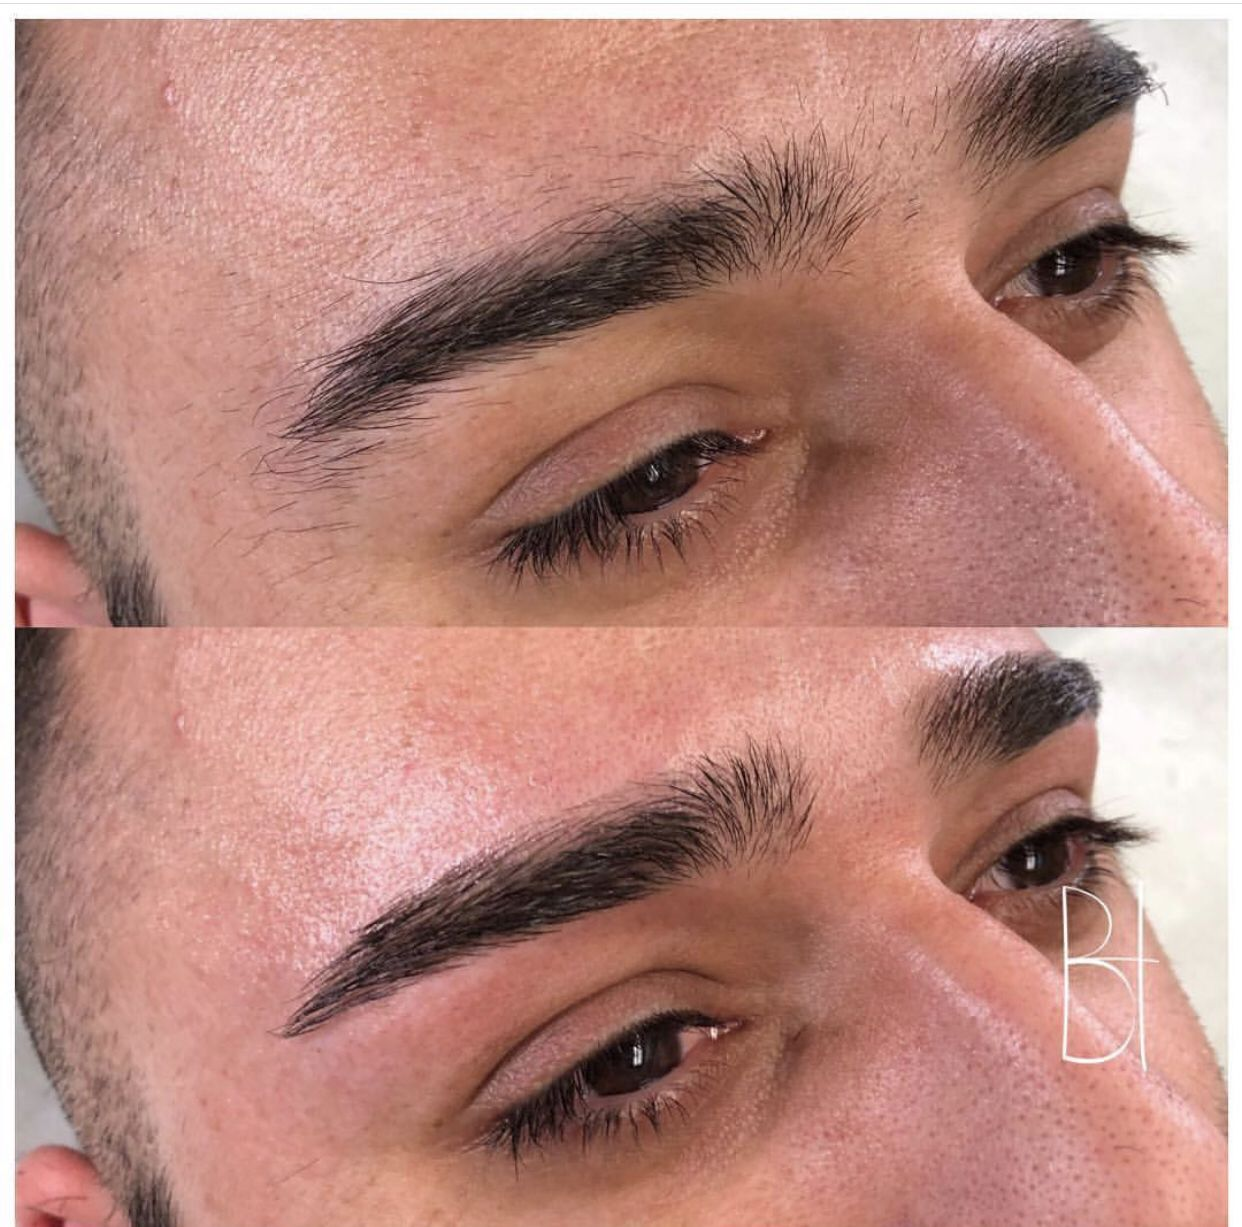 Done men getting eyebrows What Is